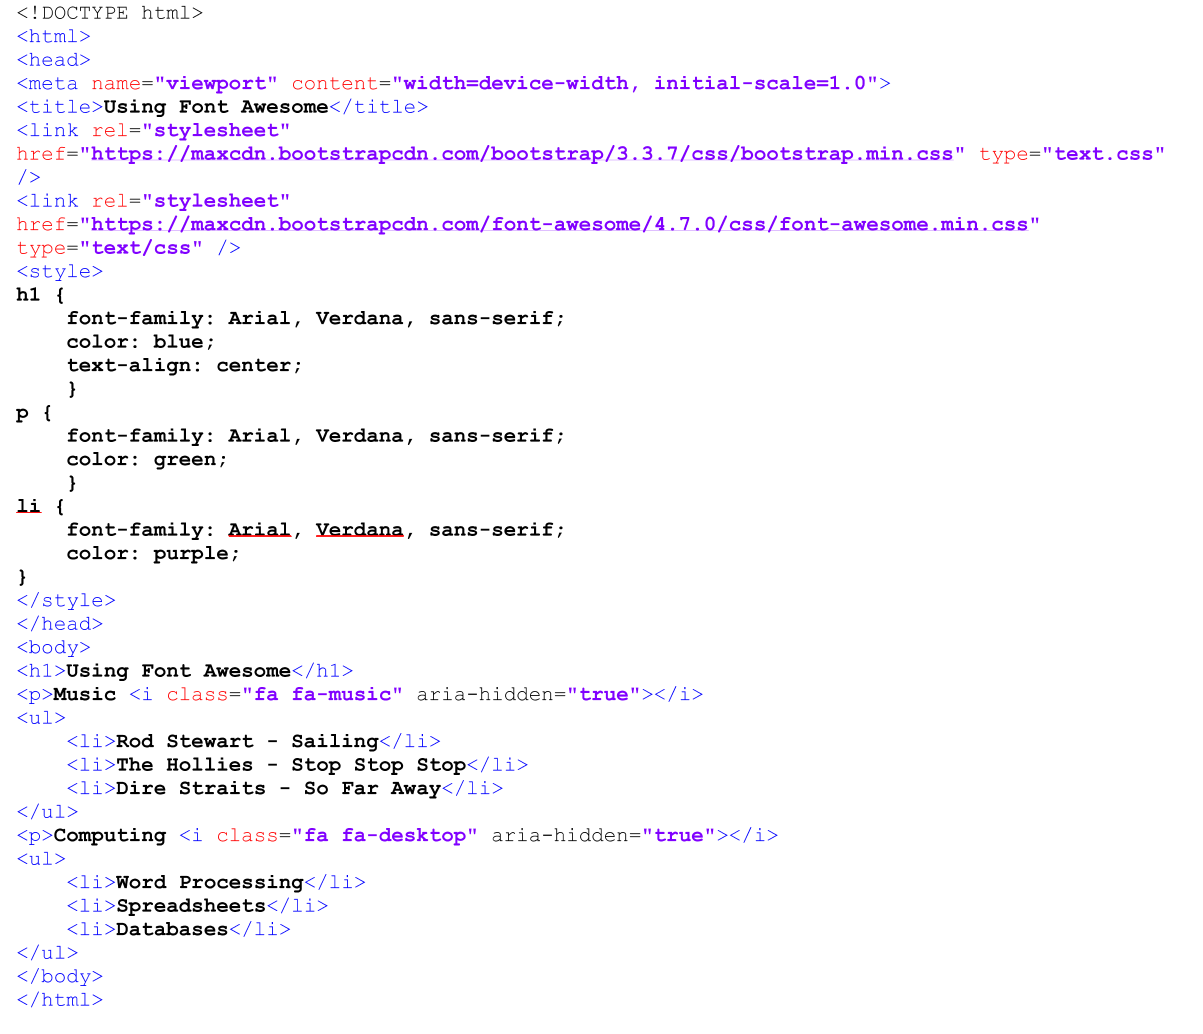 HTML and Internal Style Sheet for Heading H1, List Items